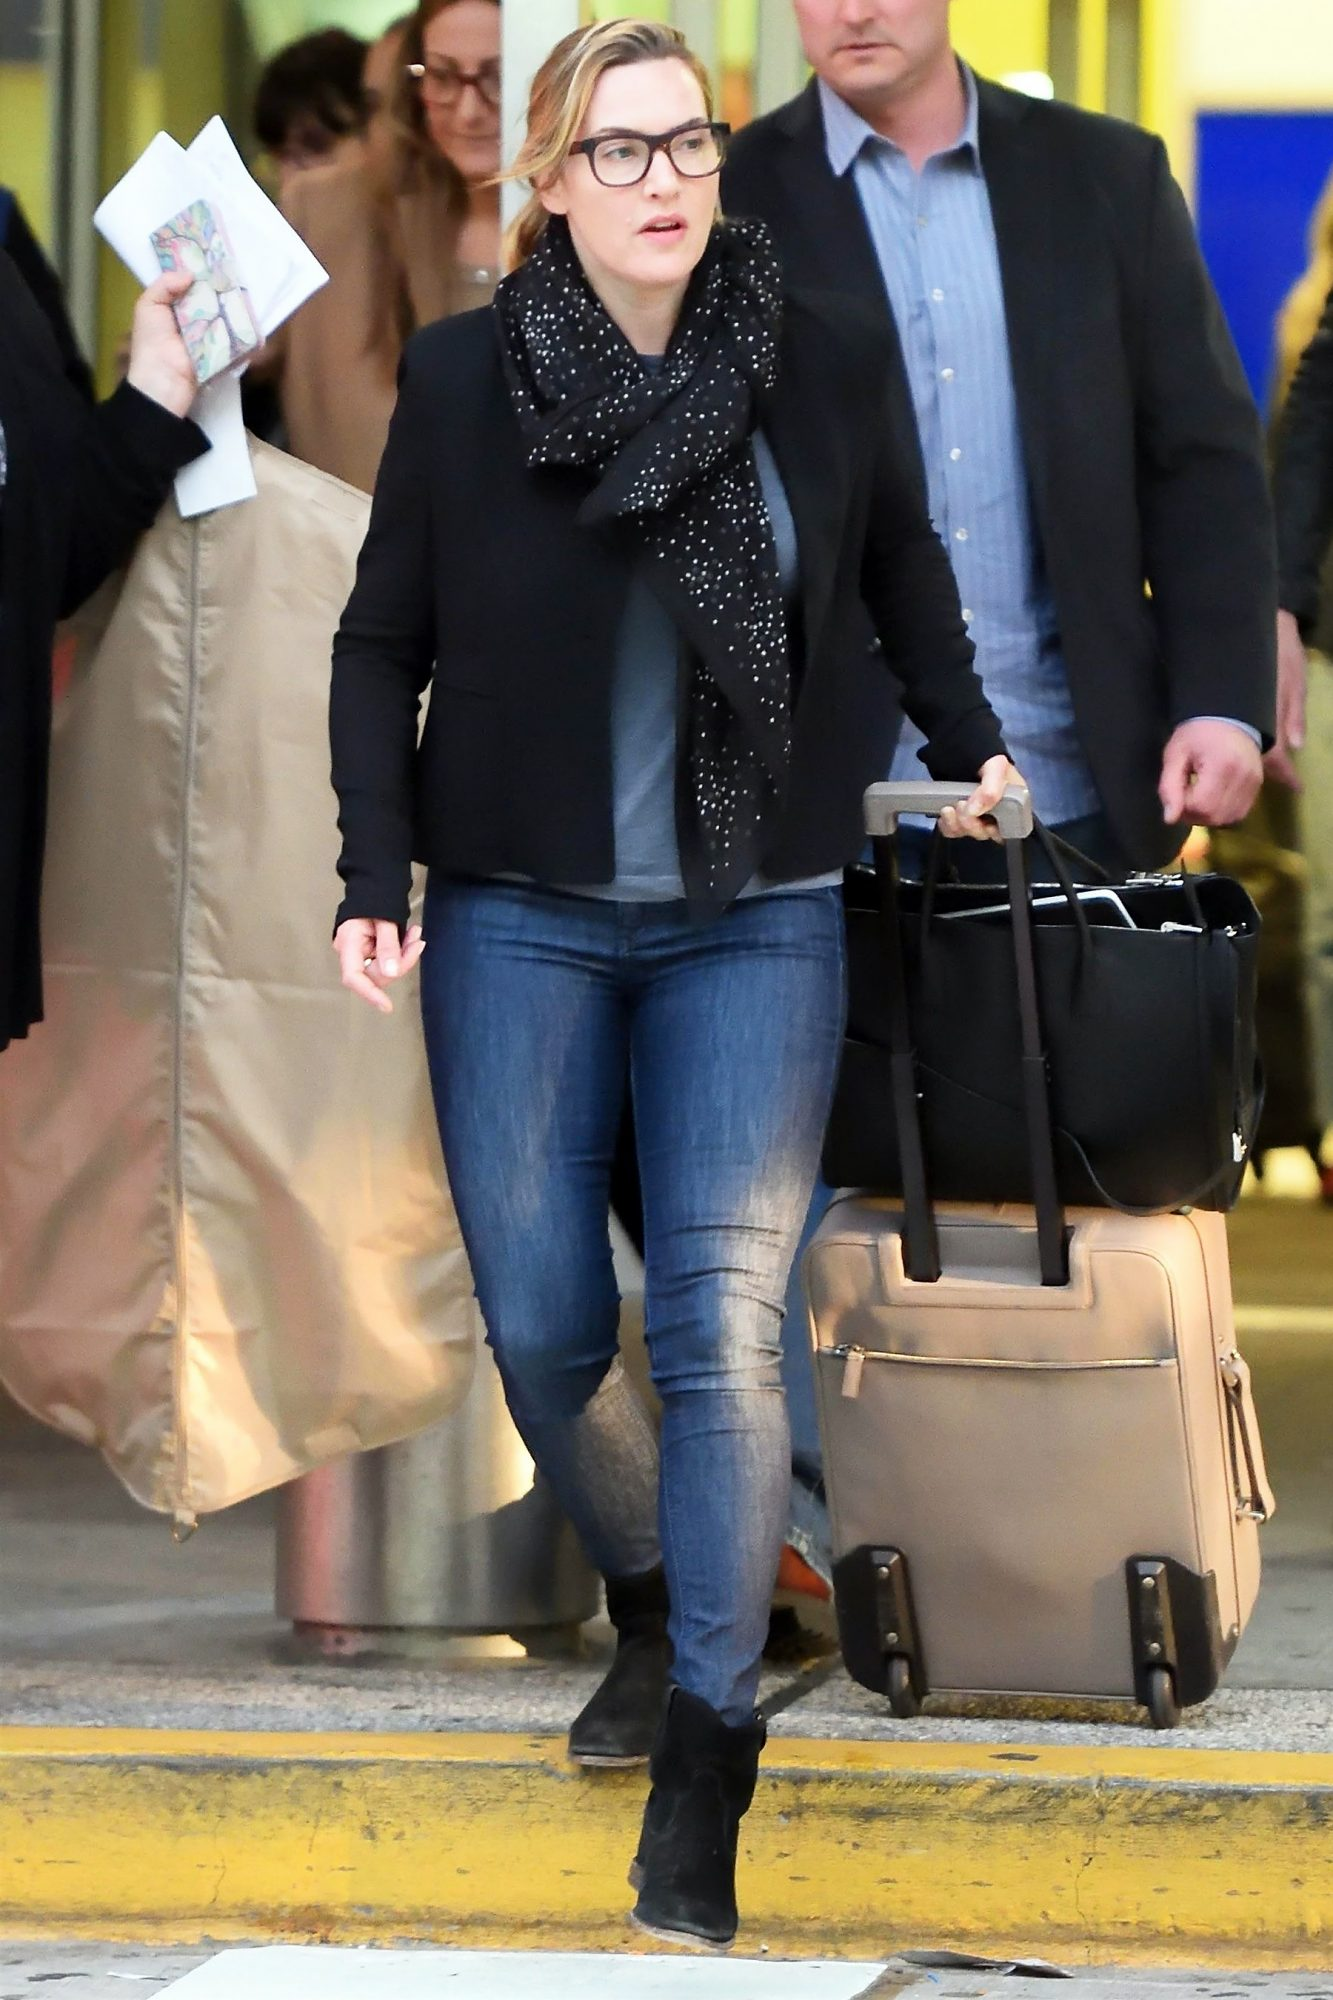 Kate Winslet arrives on a flight at JFK airport